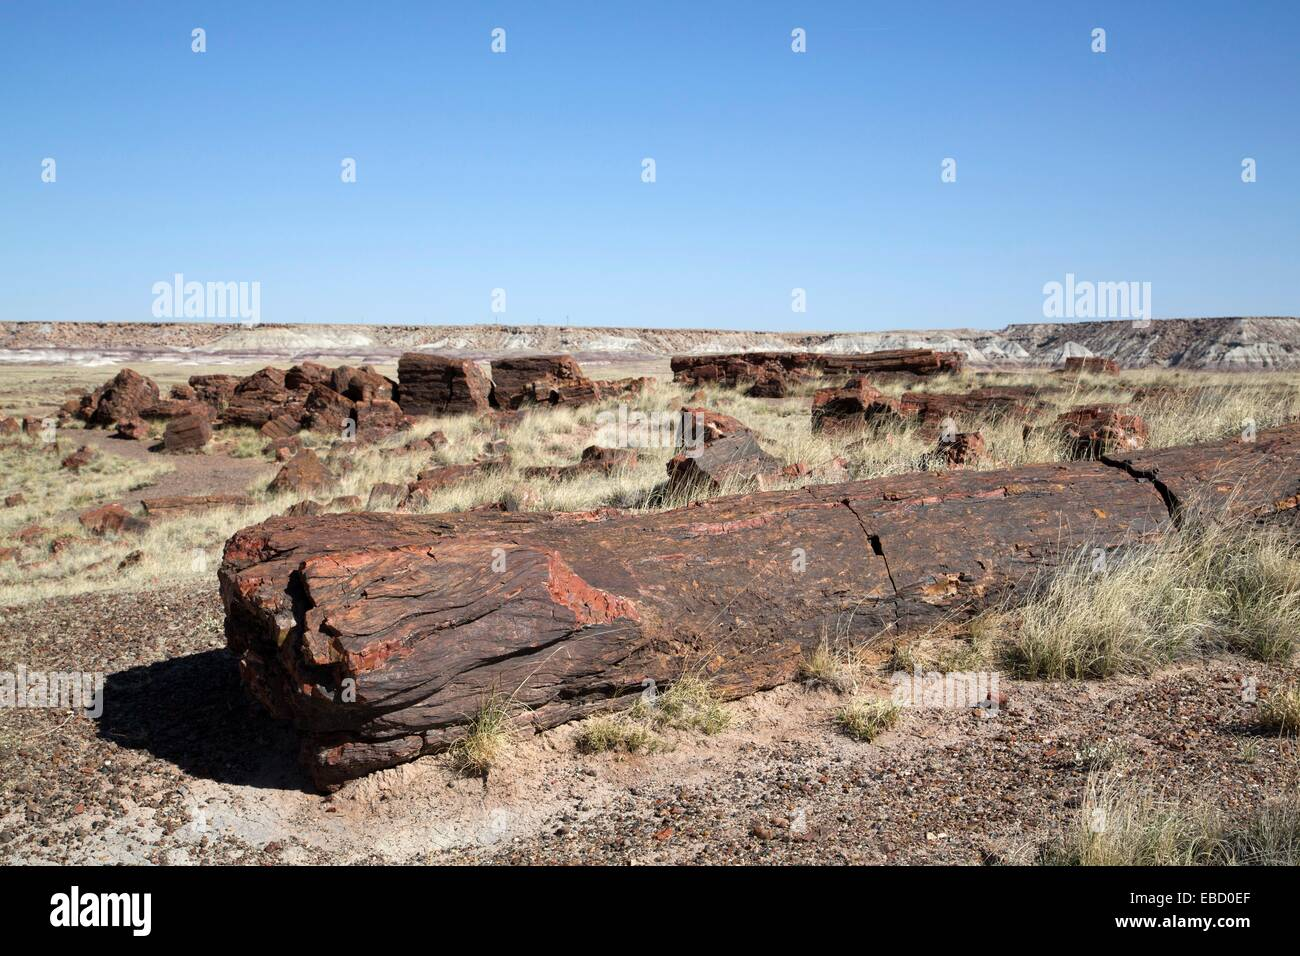 1e+6 225 ago America Arizona color image copy space fossil geology horizontal landscape late log Long Logs Mesozoic Stock Photo